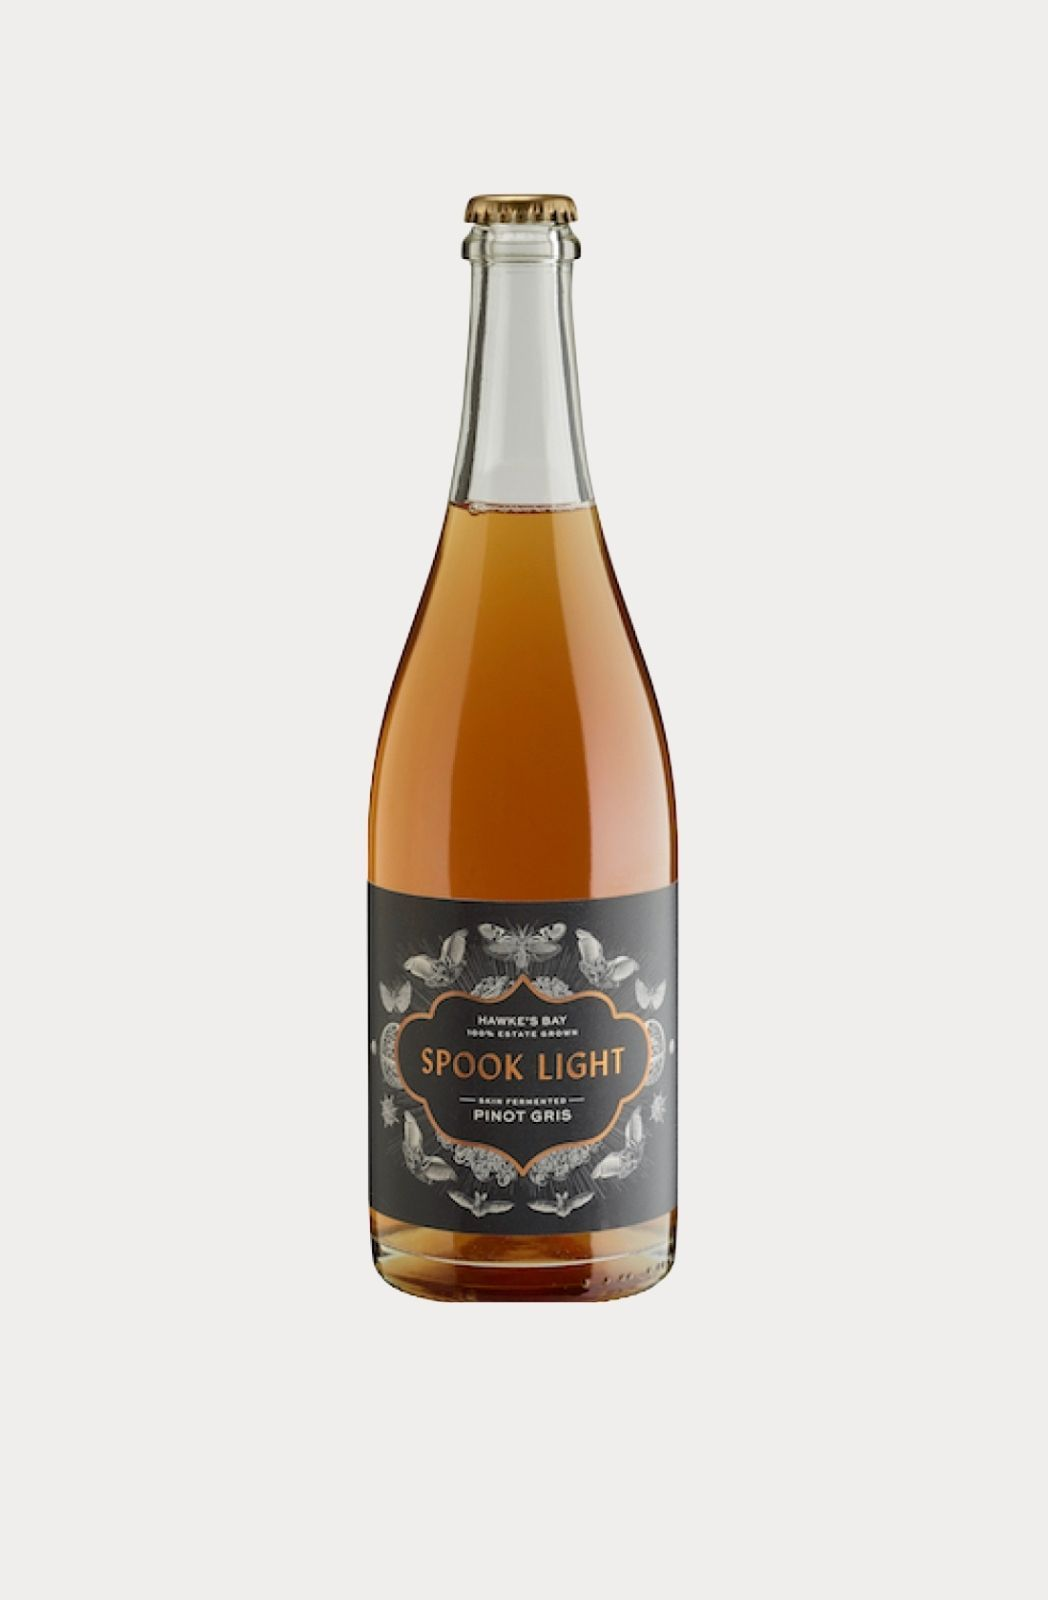 Spook Light Pinot Gris